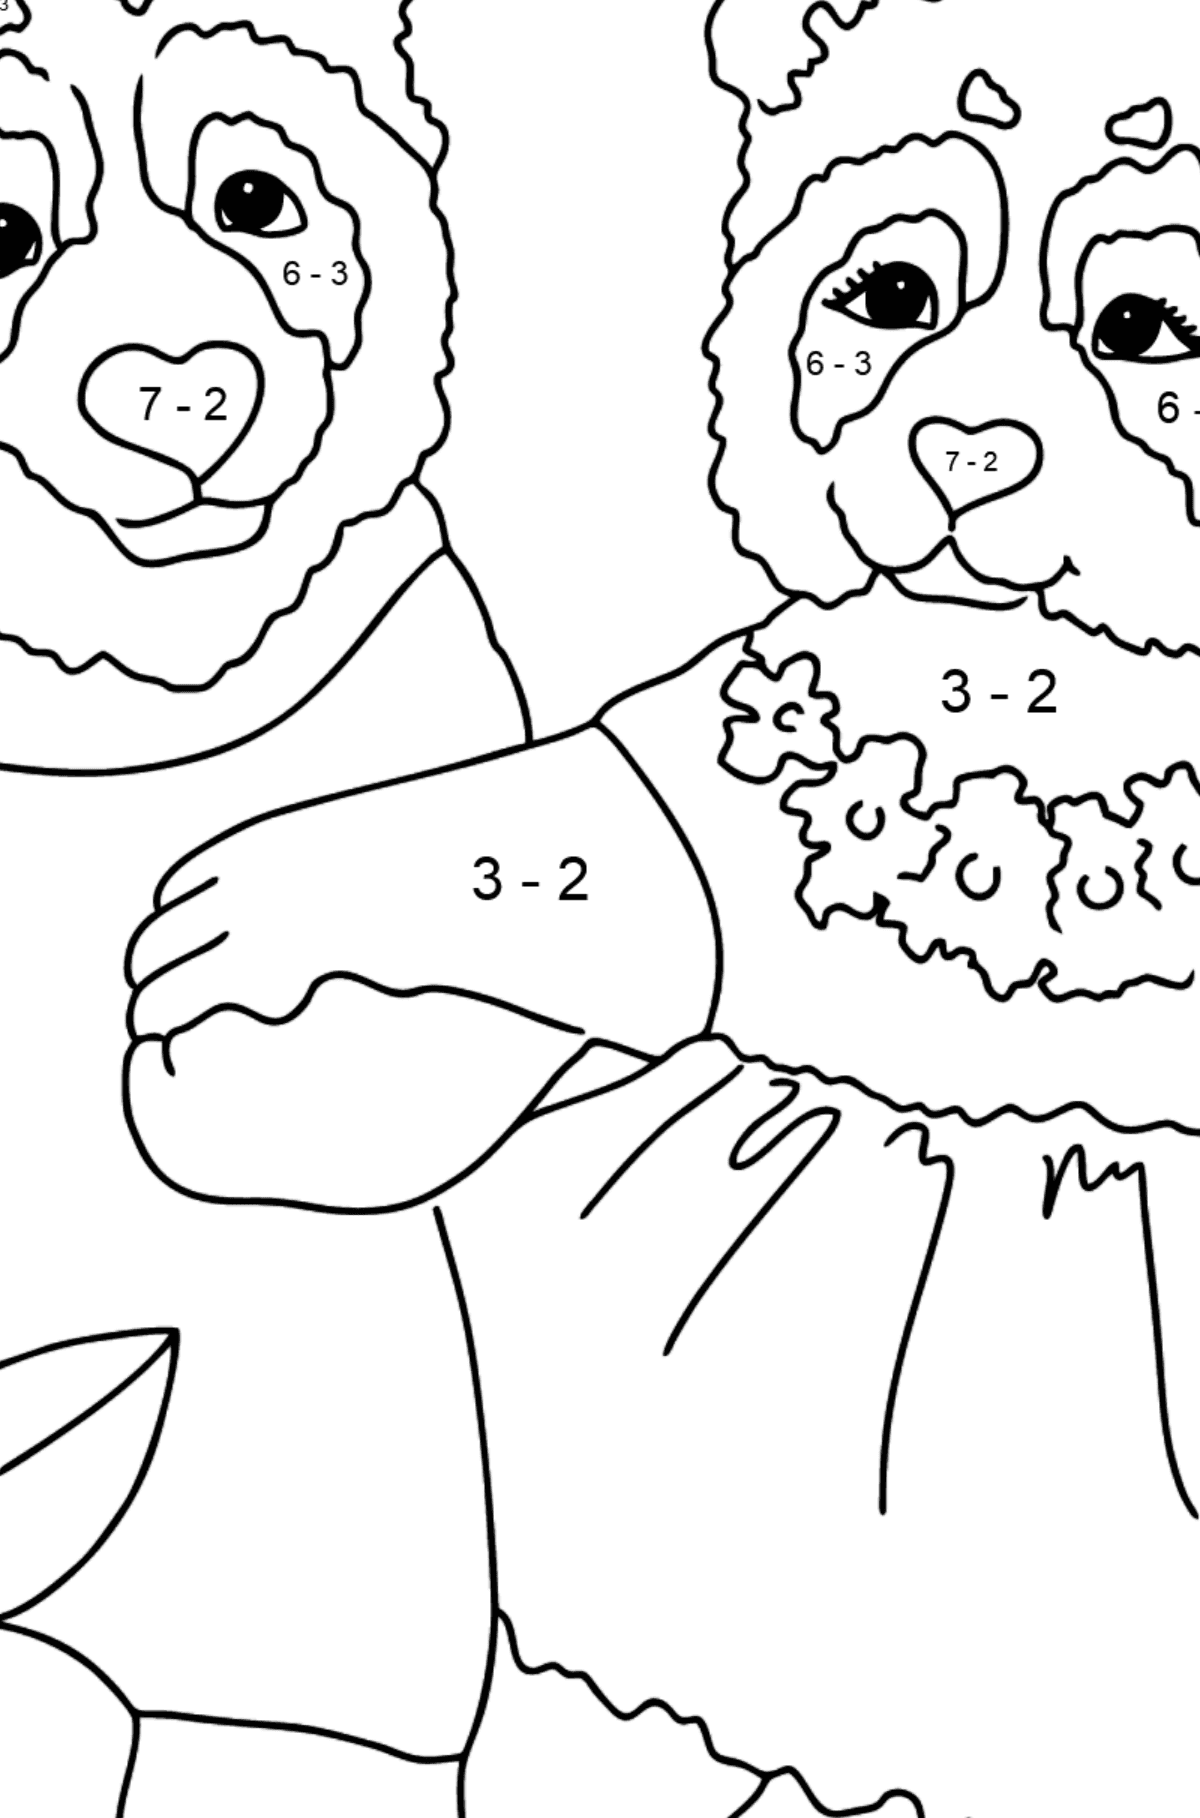 Coloring Page - Pandas Taking a Walk - Math Coloring - Subtraction for Kids